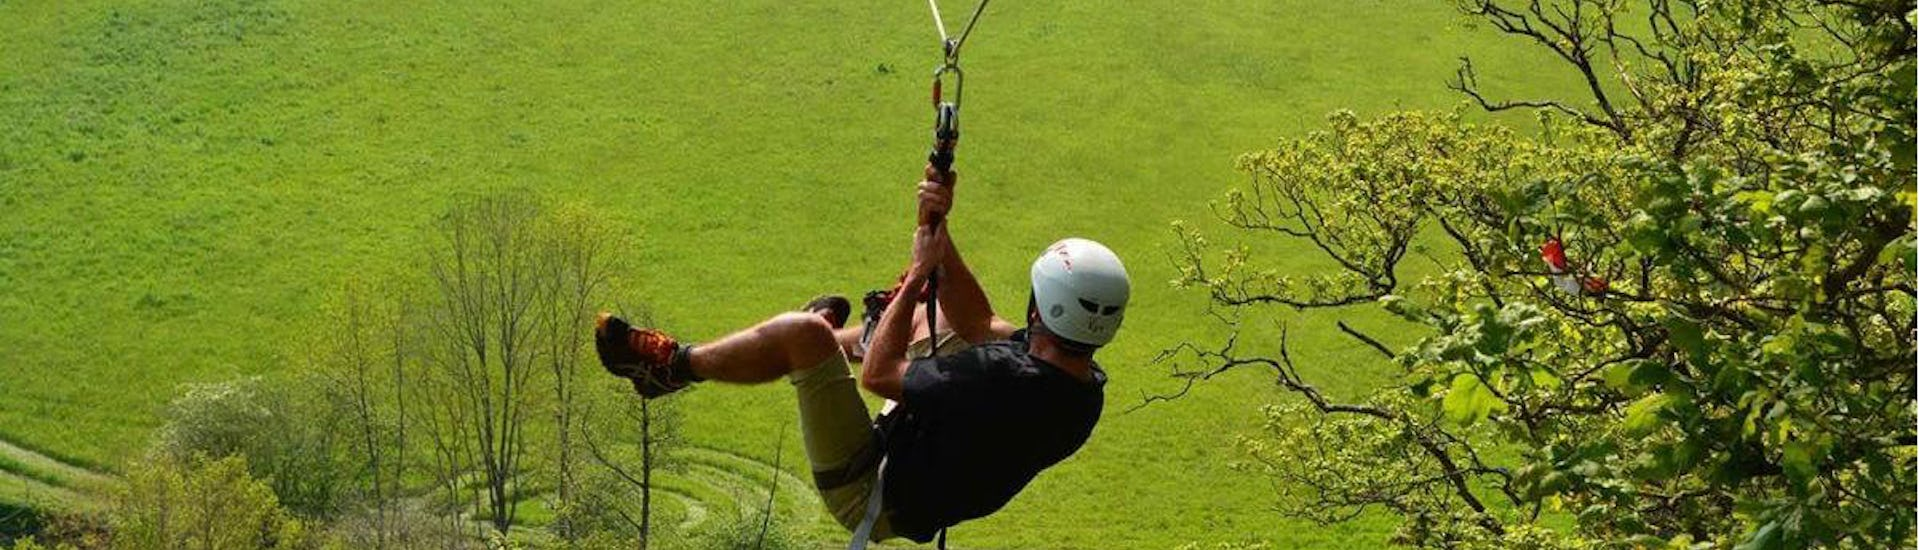 "Zipline ""400m"" over the Orne river - Clécy"